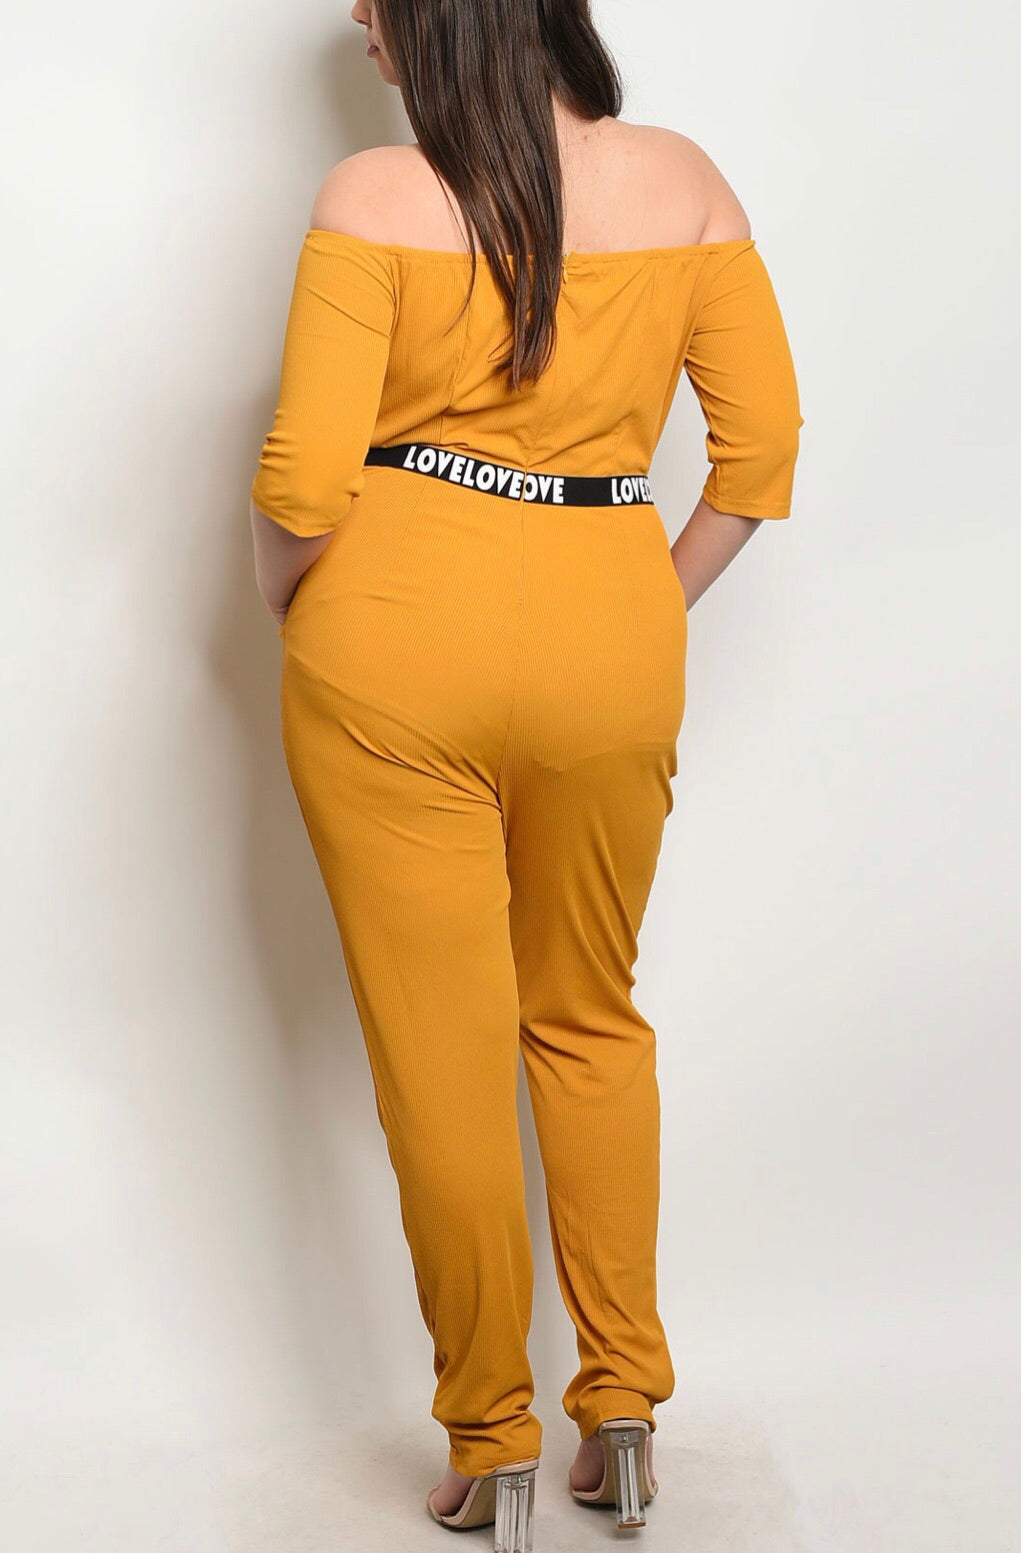 Yellow Love Jumpsuit